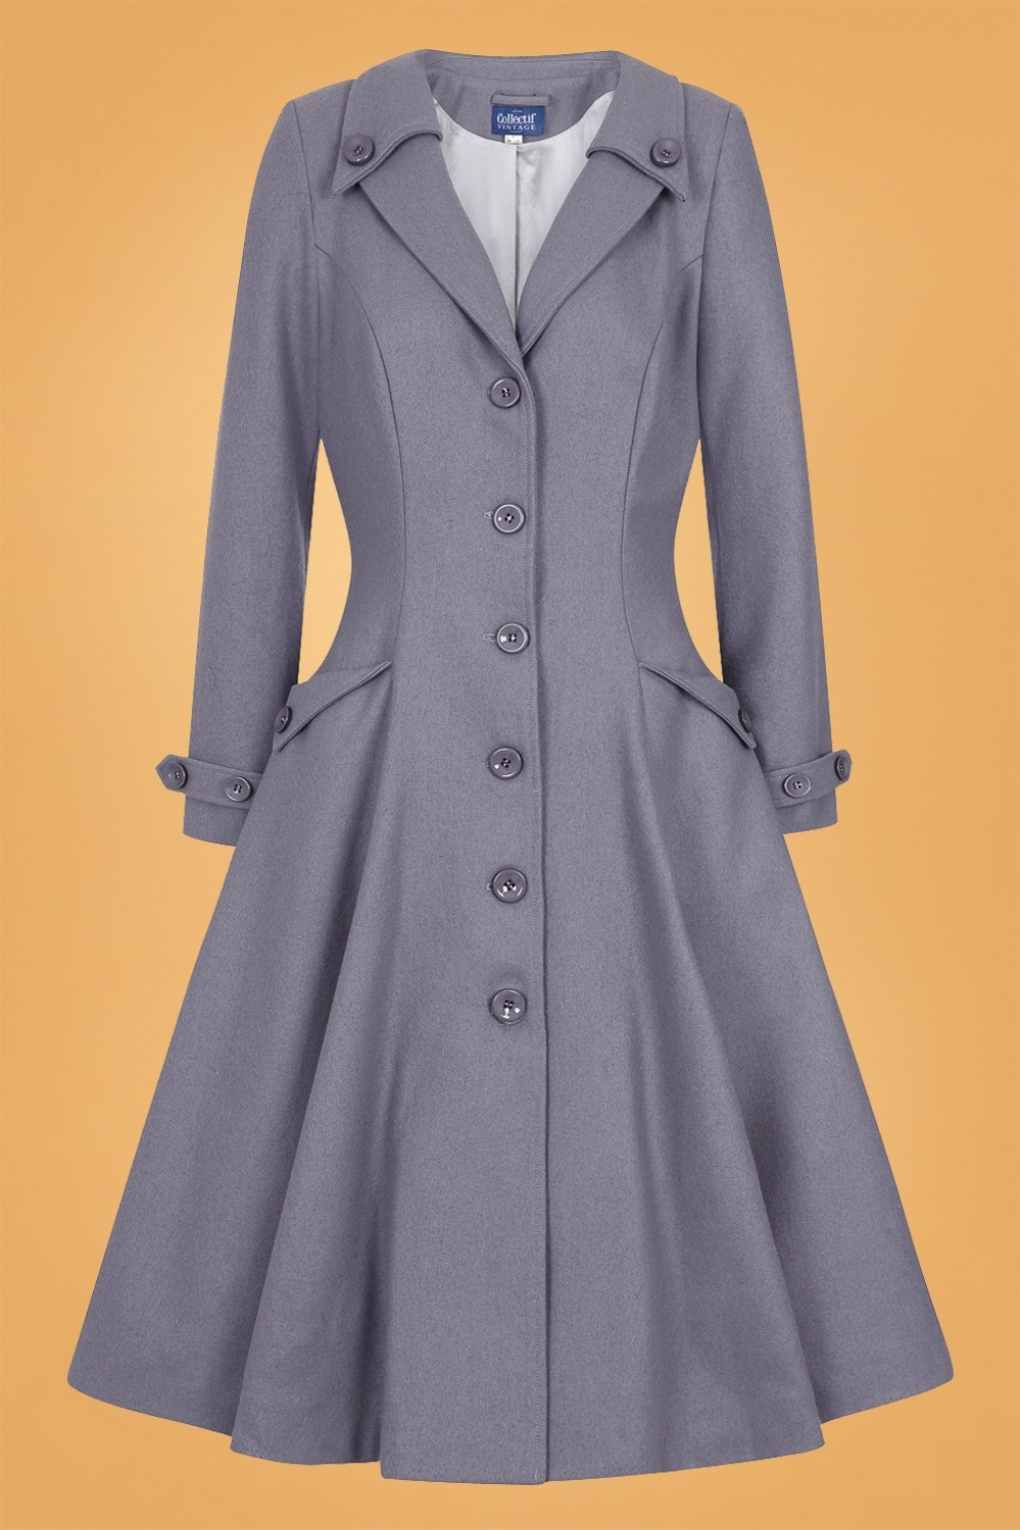 1950s Jackets, Coats, Bolero | Swing, Pin Up, Rockabilly 50s Alyssa Swing Coat in Grey £151.48 AT vintagedancer.com